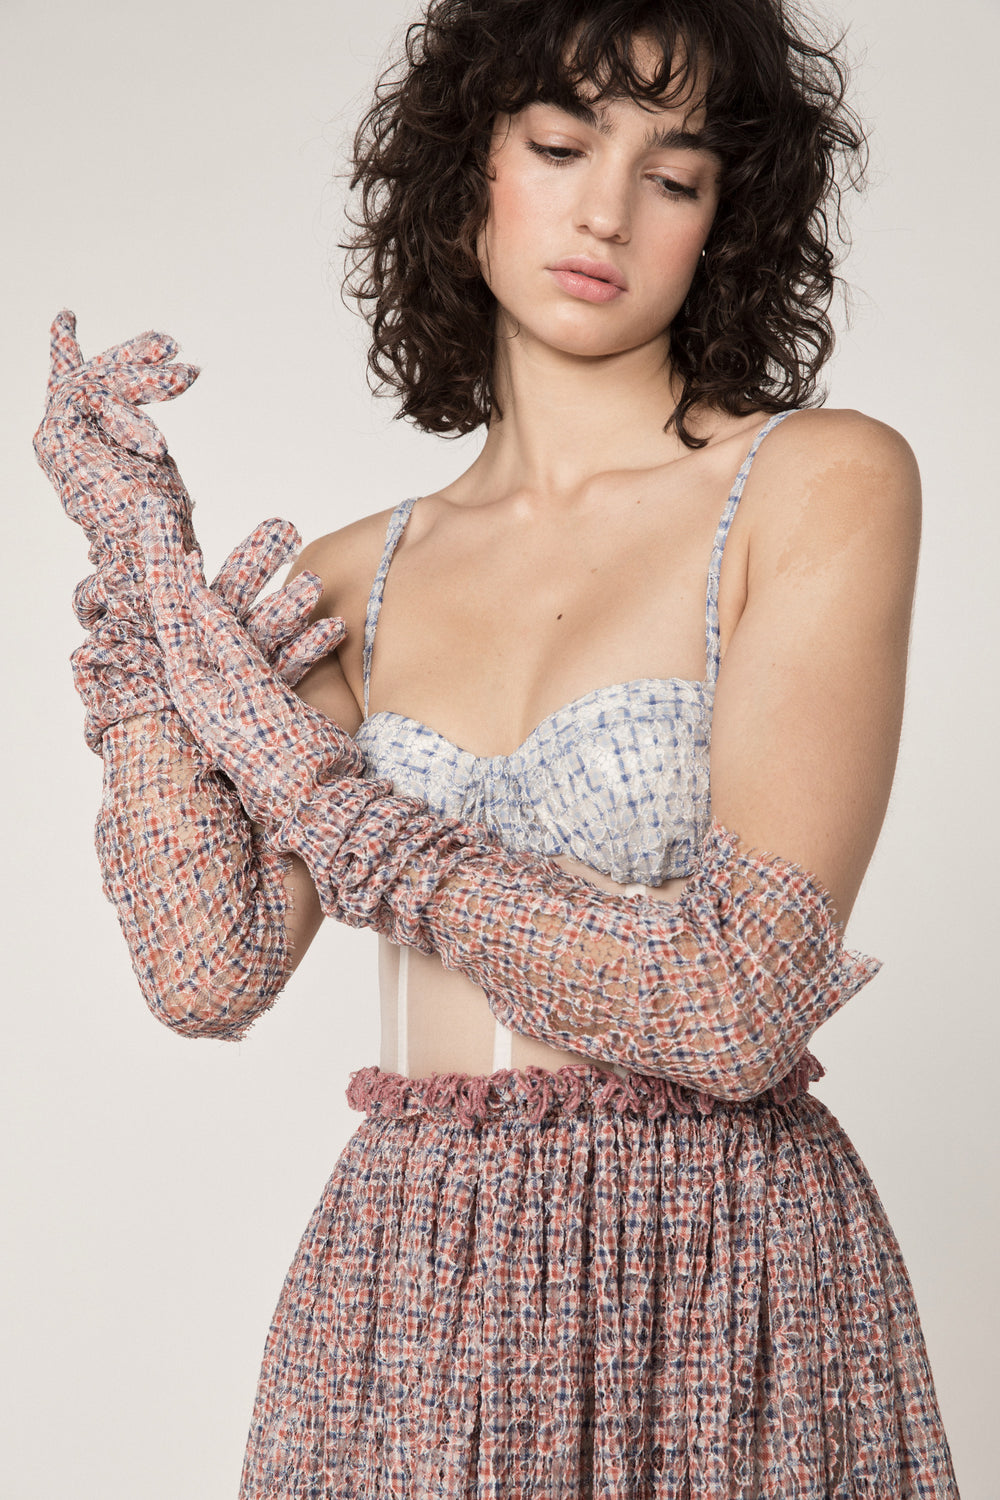 Rosie Assoulin Pre-Fall 2019 The Undress. Mid-length cocktail dress with sheer panels. Corset bodice. Scalloped hem. Ruffle detail at waist. Red plaid. 60% Nylon, 40% Rayon. Sizes 0 - 12.